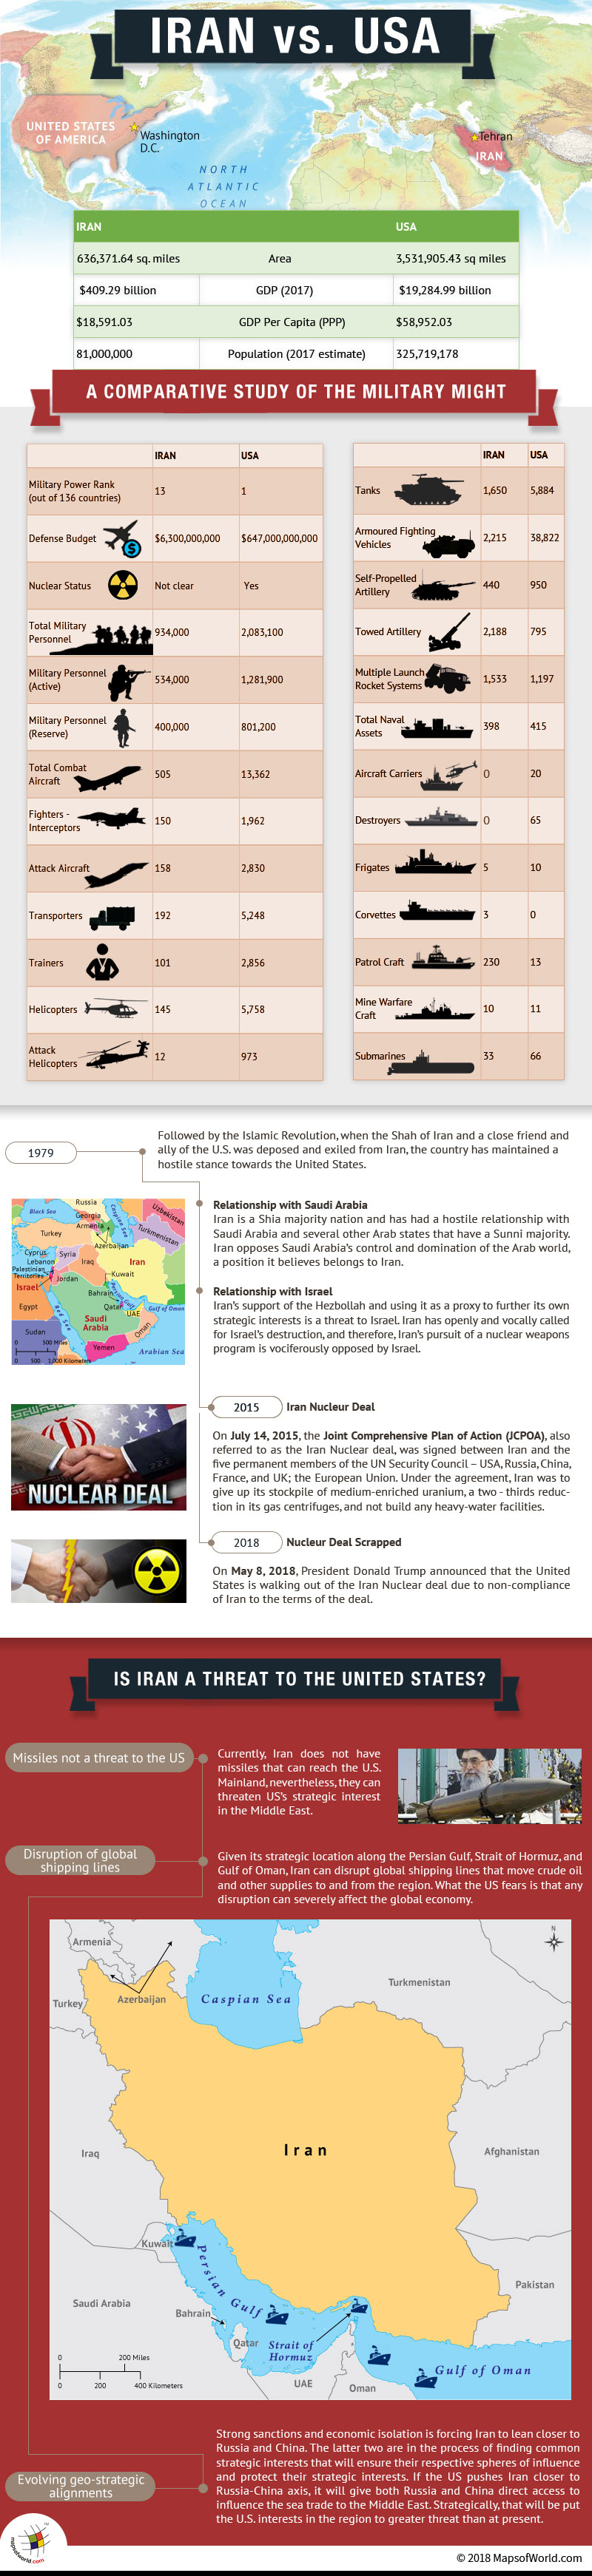 Infographic and Maps on USA and Iran